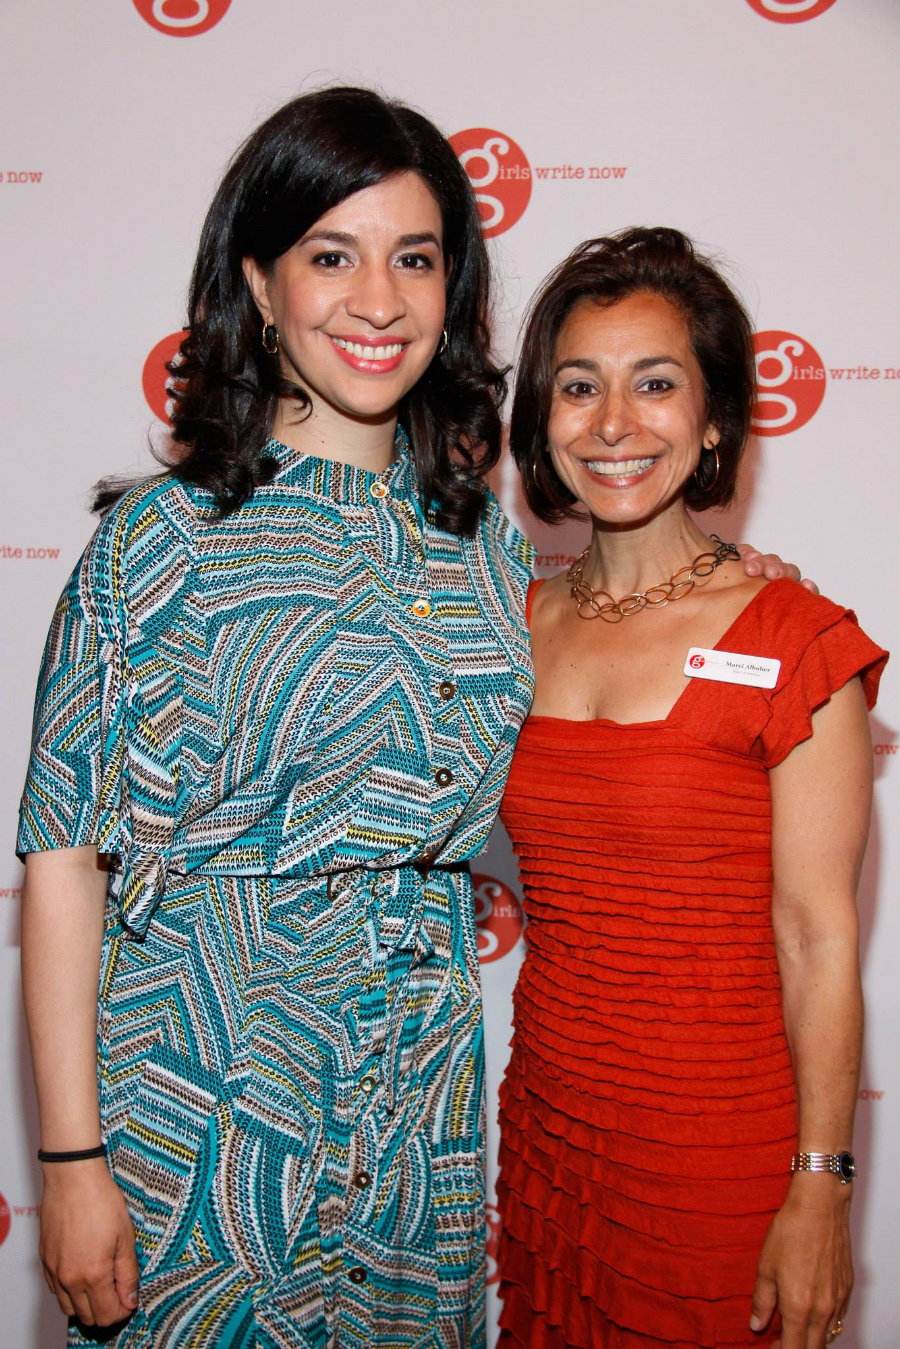 The New York Times journalist Tanzina Vega and GWN Board Member Marci Alboher.